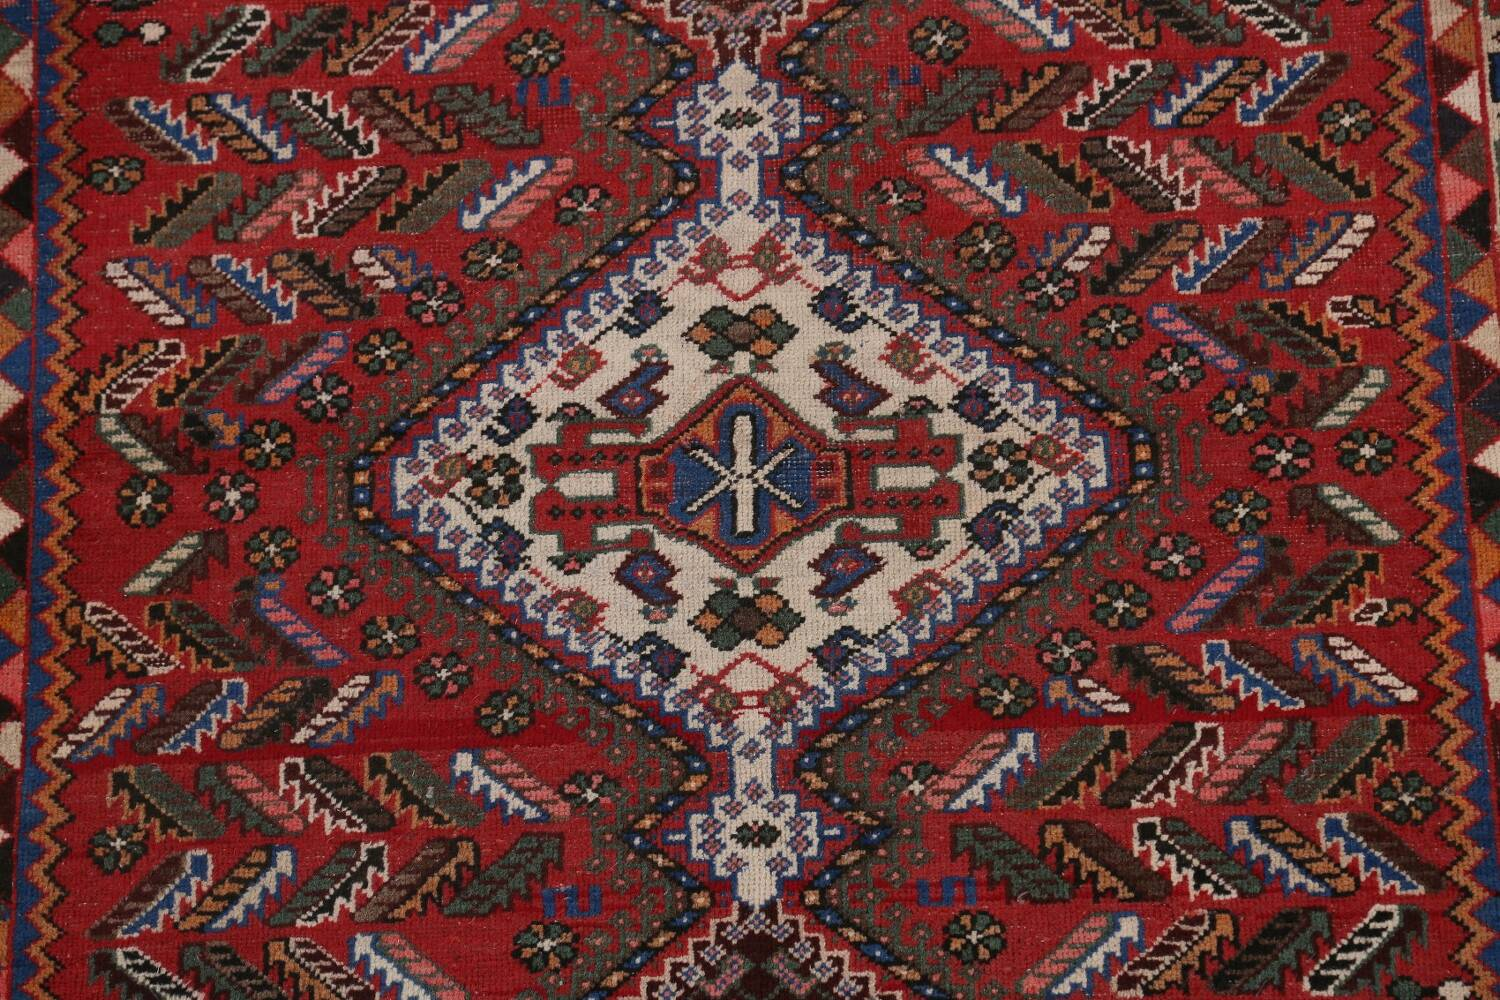 Antique Tribal Bakhtiari Persian Area Rug 5x6 image 4